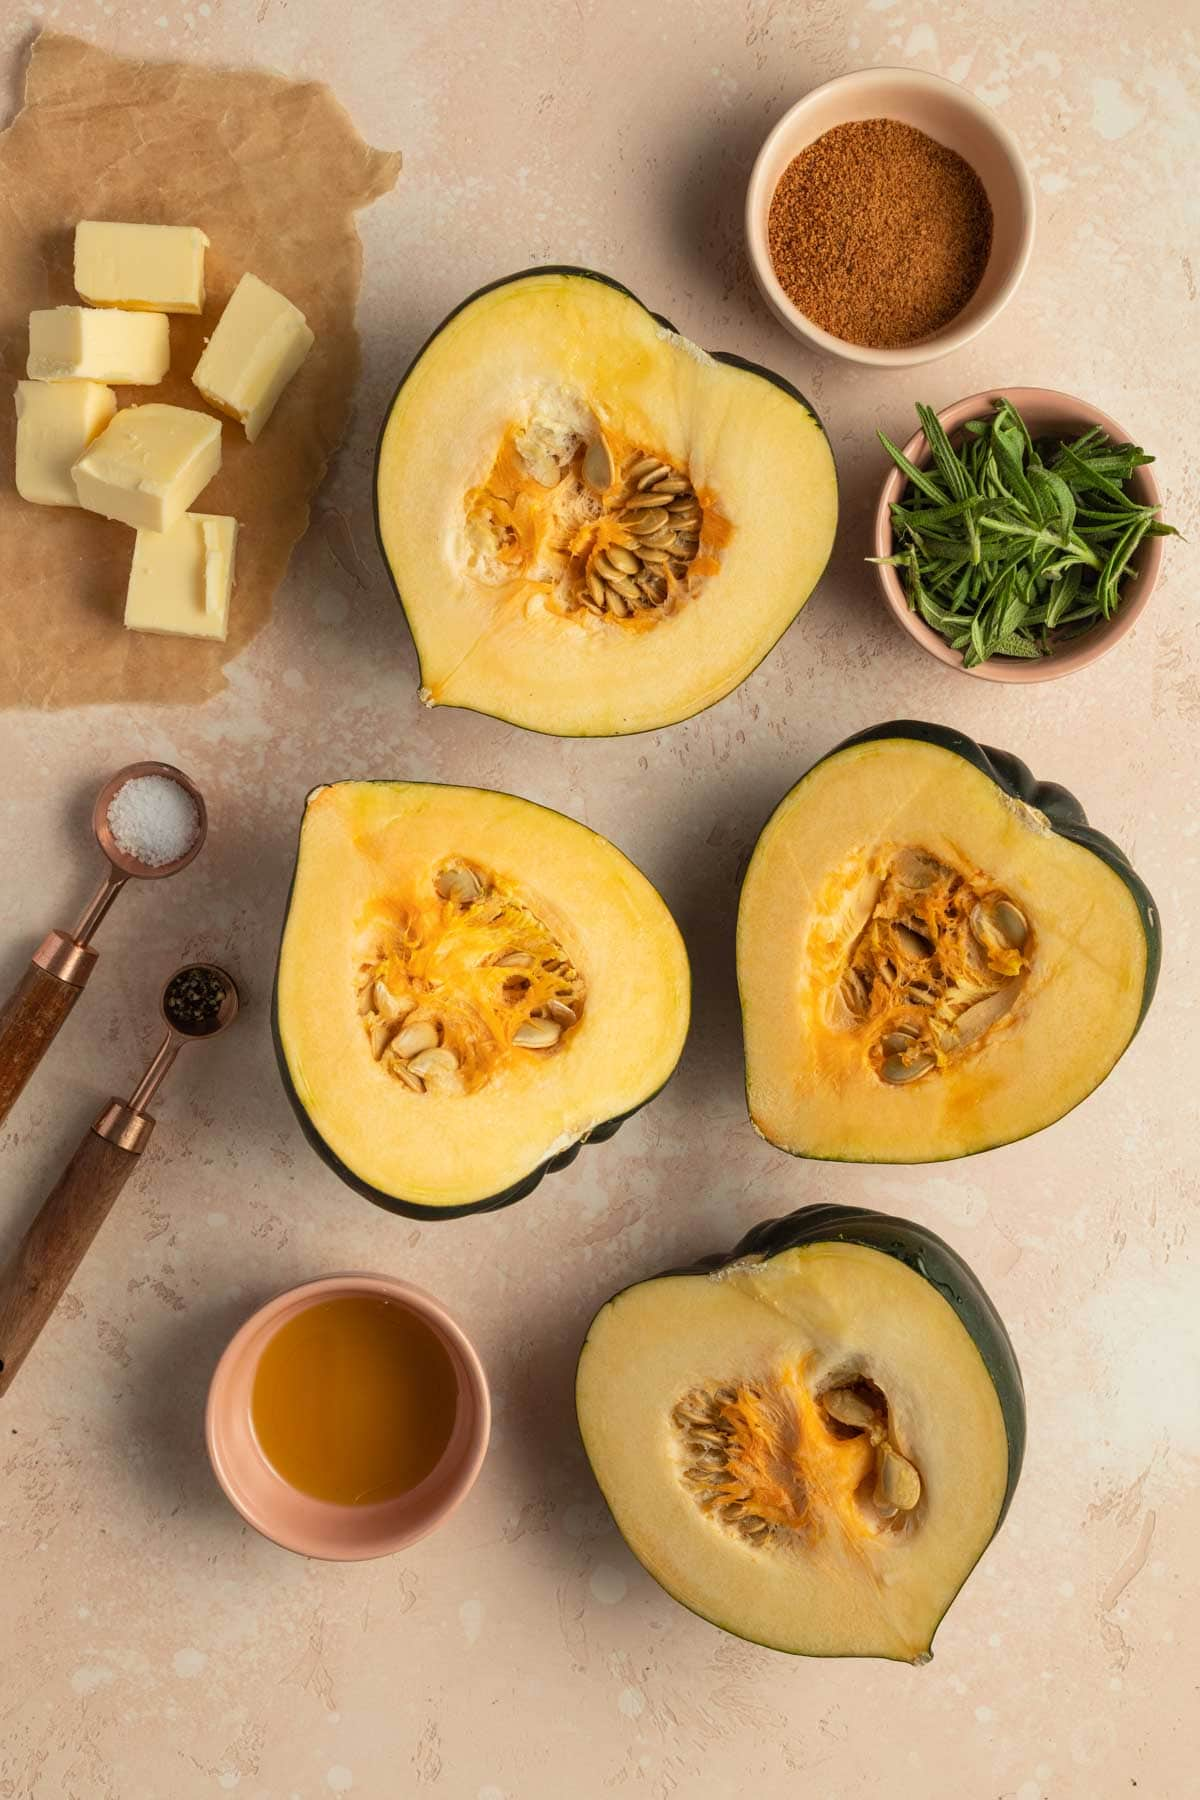 Overhead view of ingredients to make mashed acorn squash arranged individually.